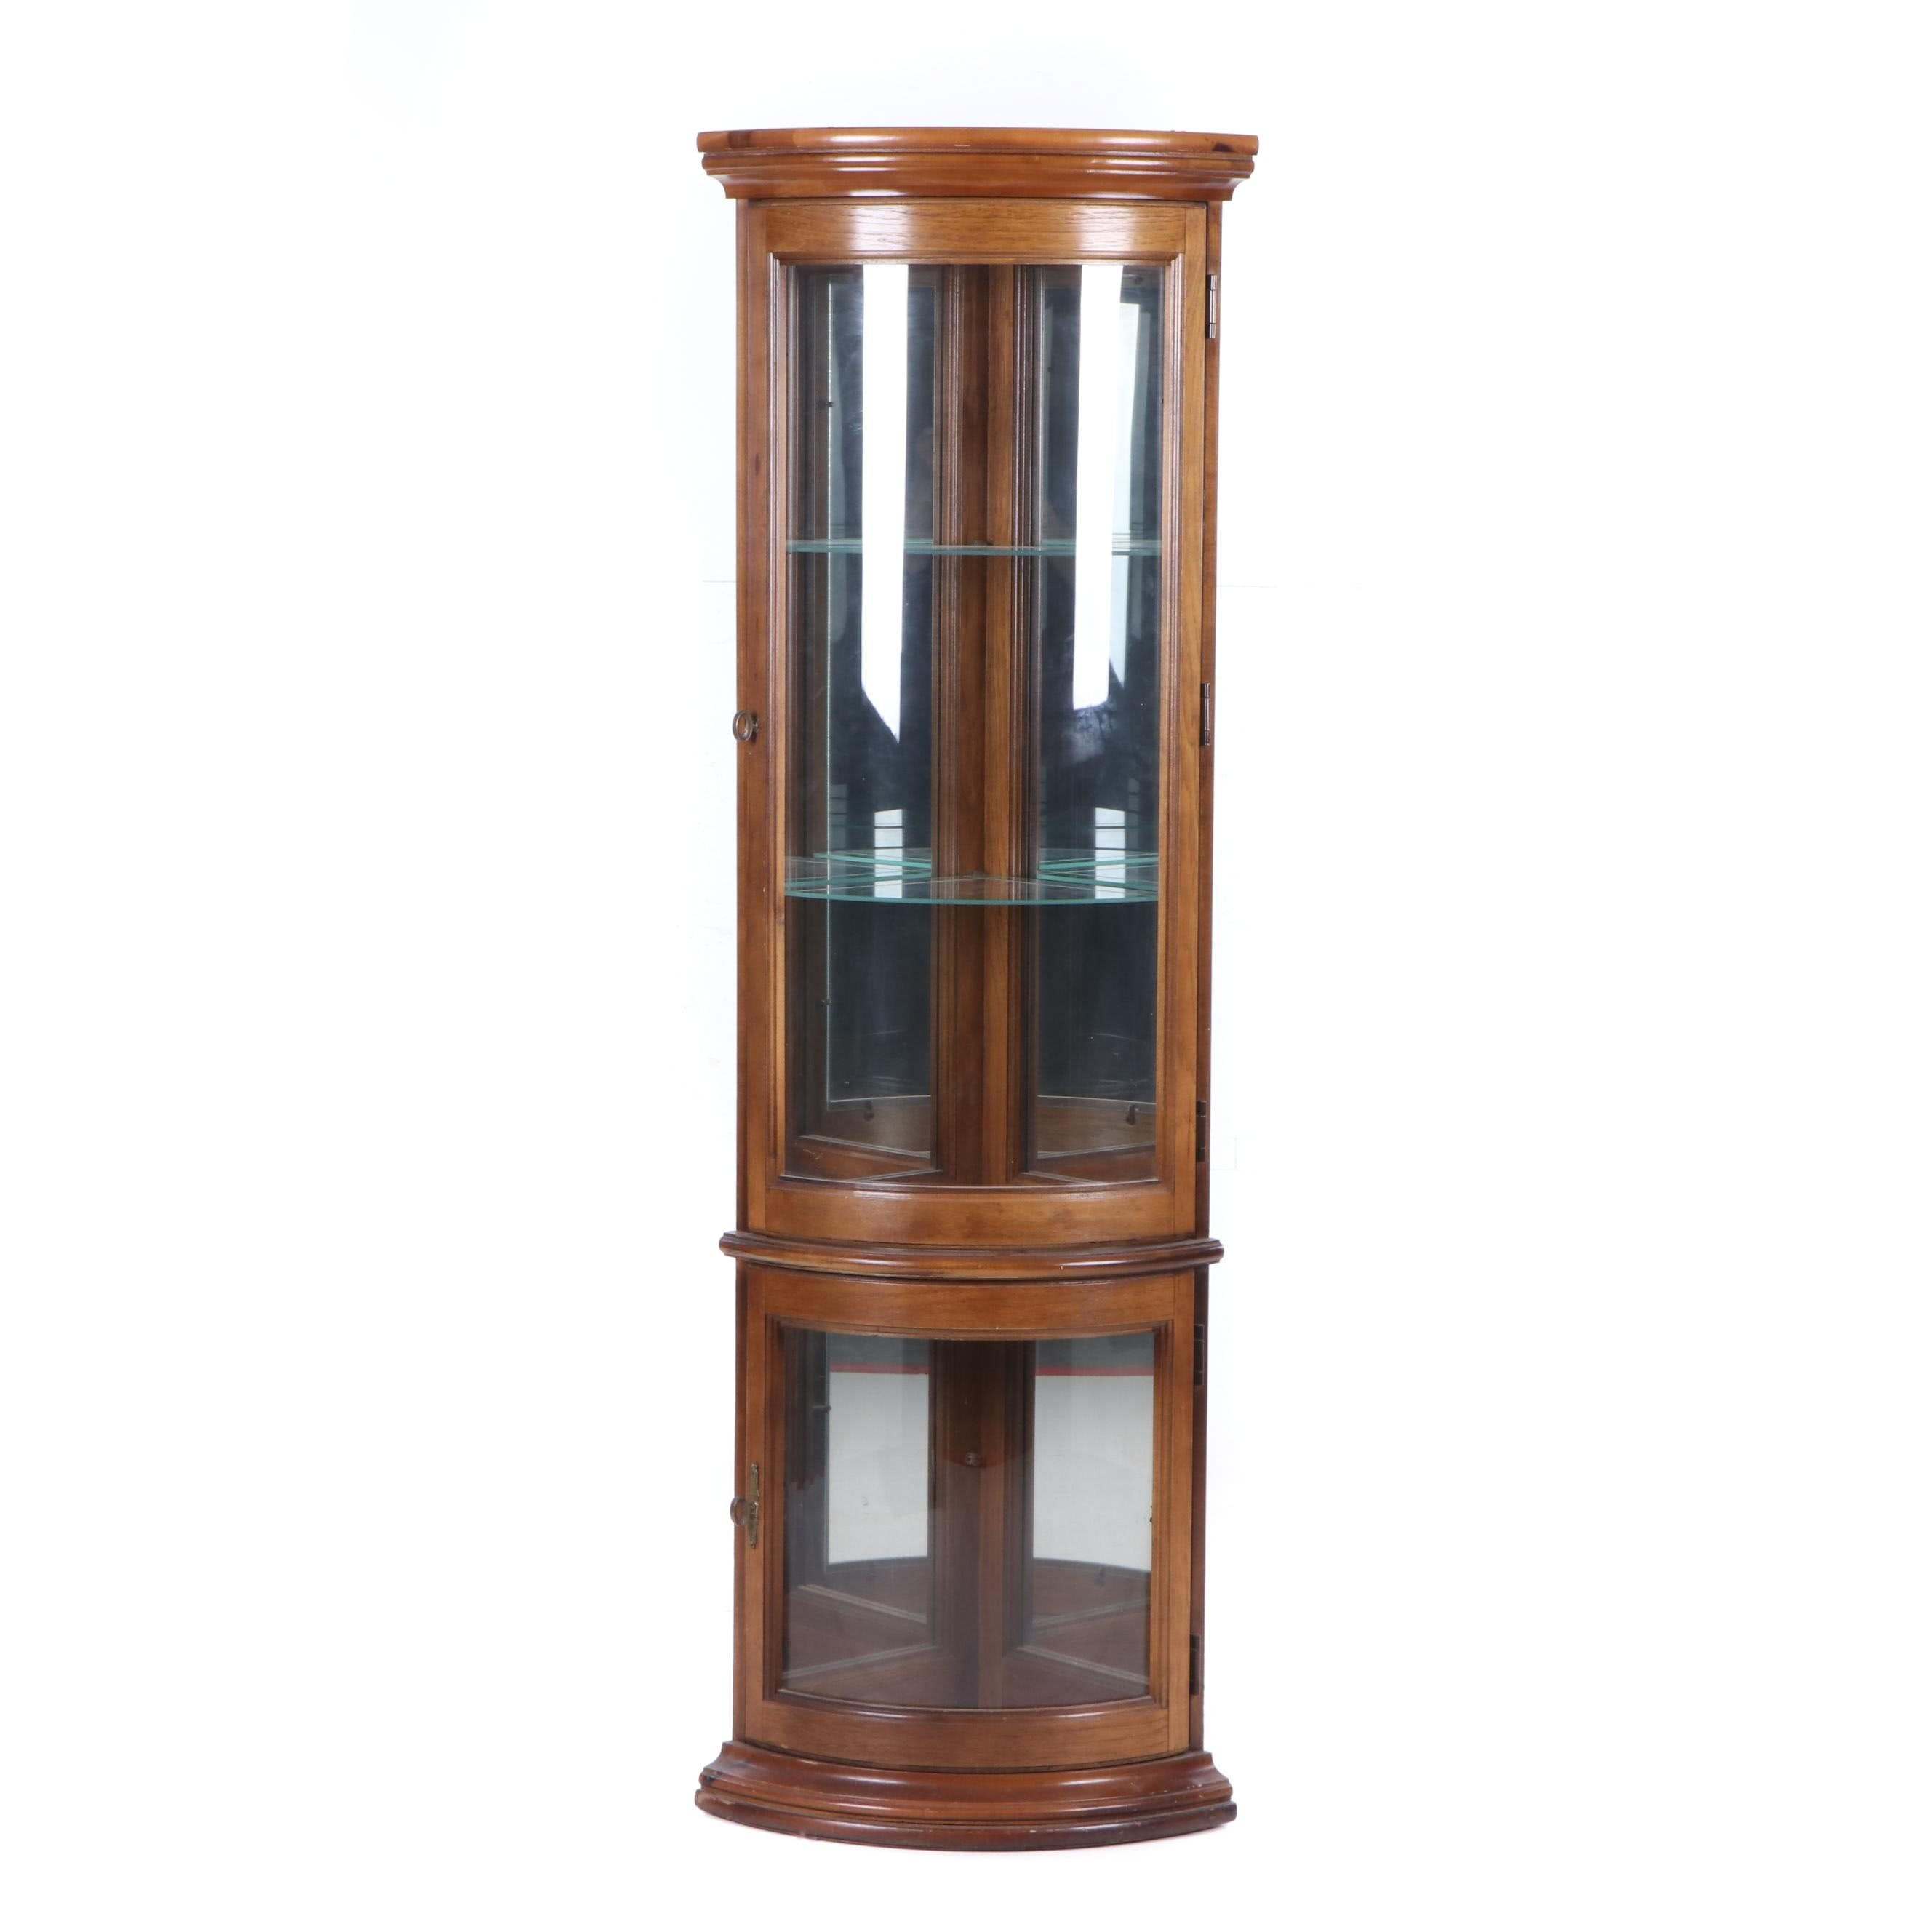 Walnut Finish Wood Illuminated Corner Curio Cabinet, Late 20th Century